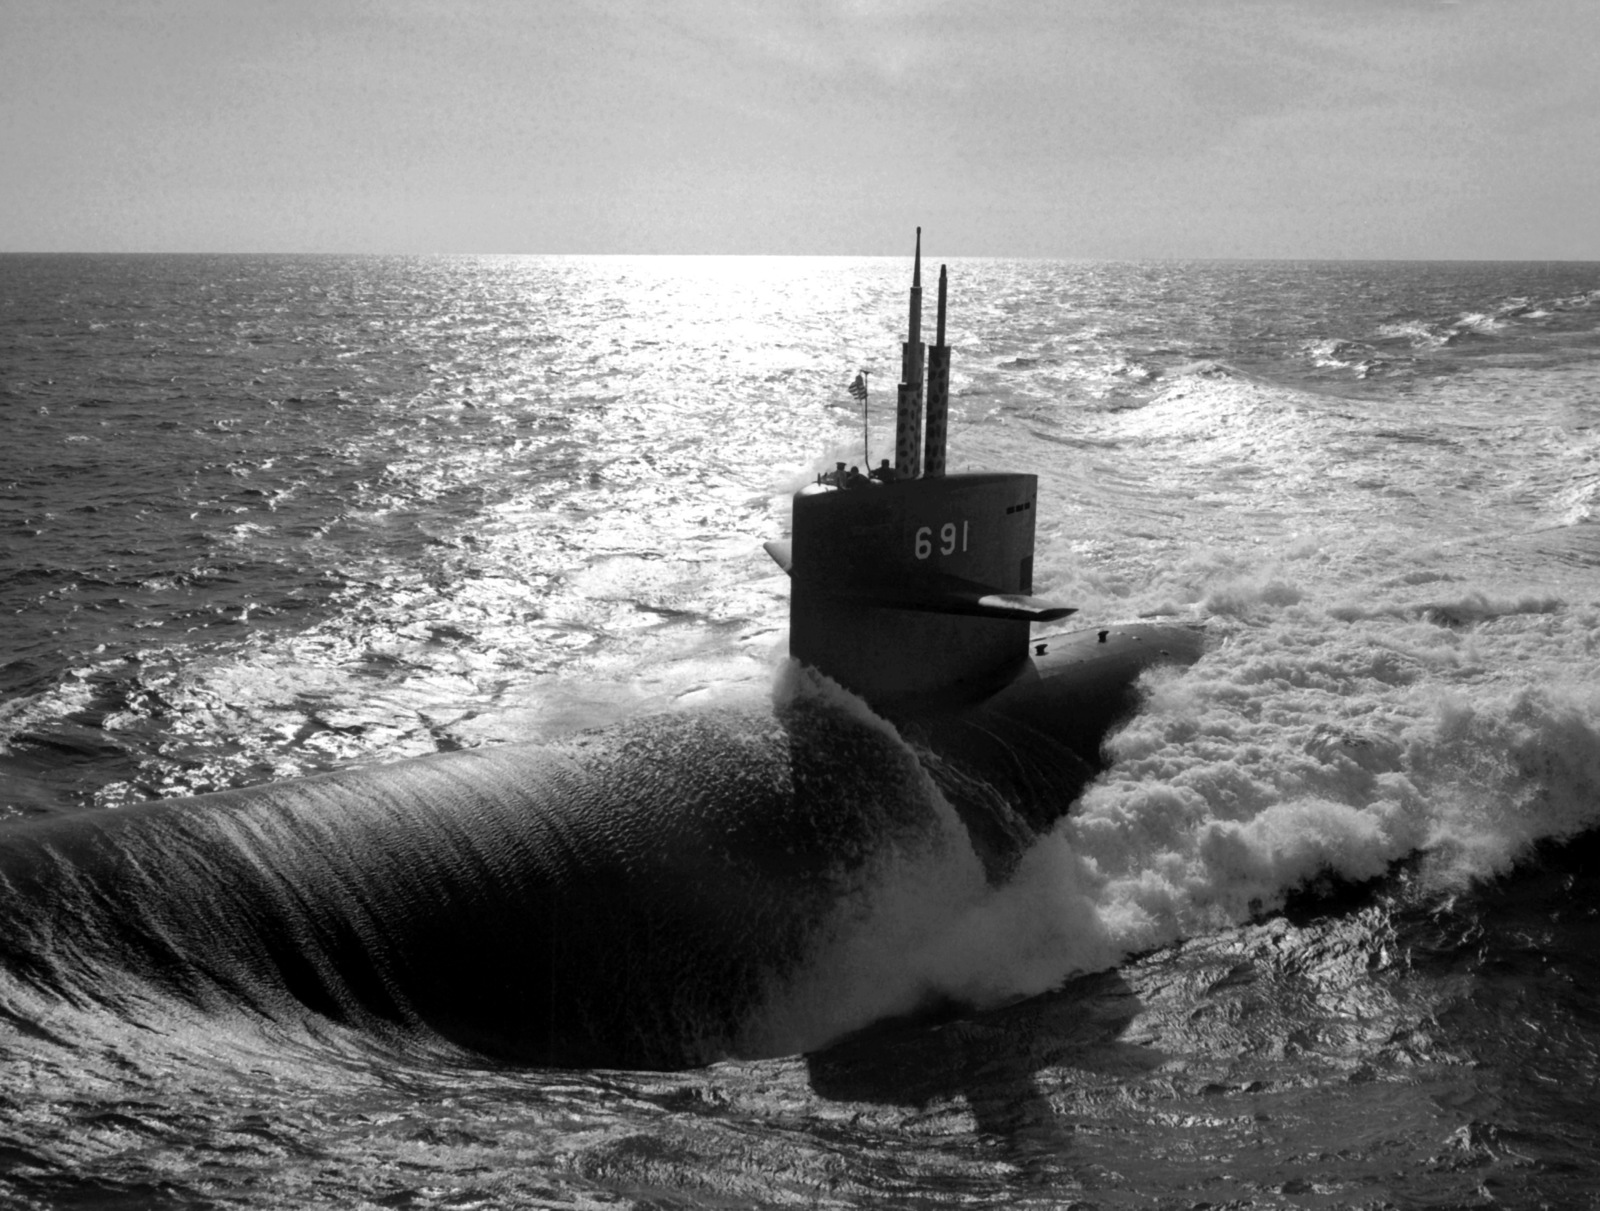 Aerial port beam view of the nuclear-powered attack submarine USS MEMPHIS (SSN-691) underway